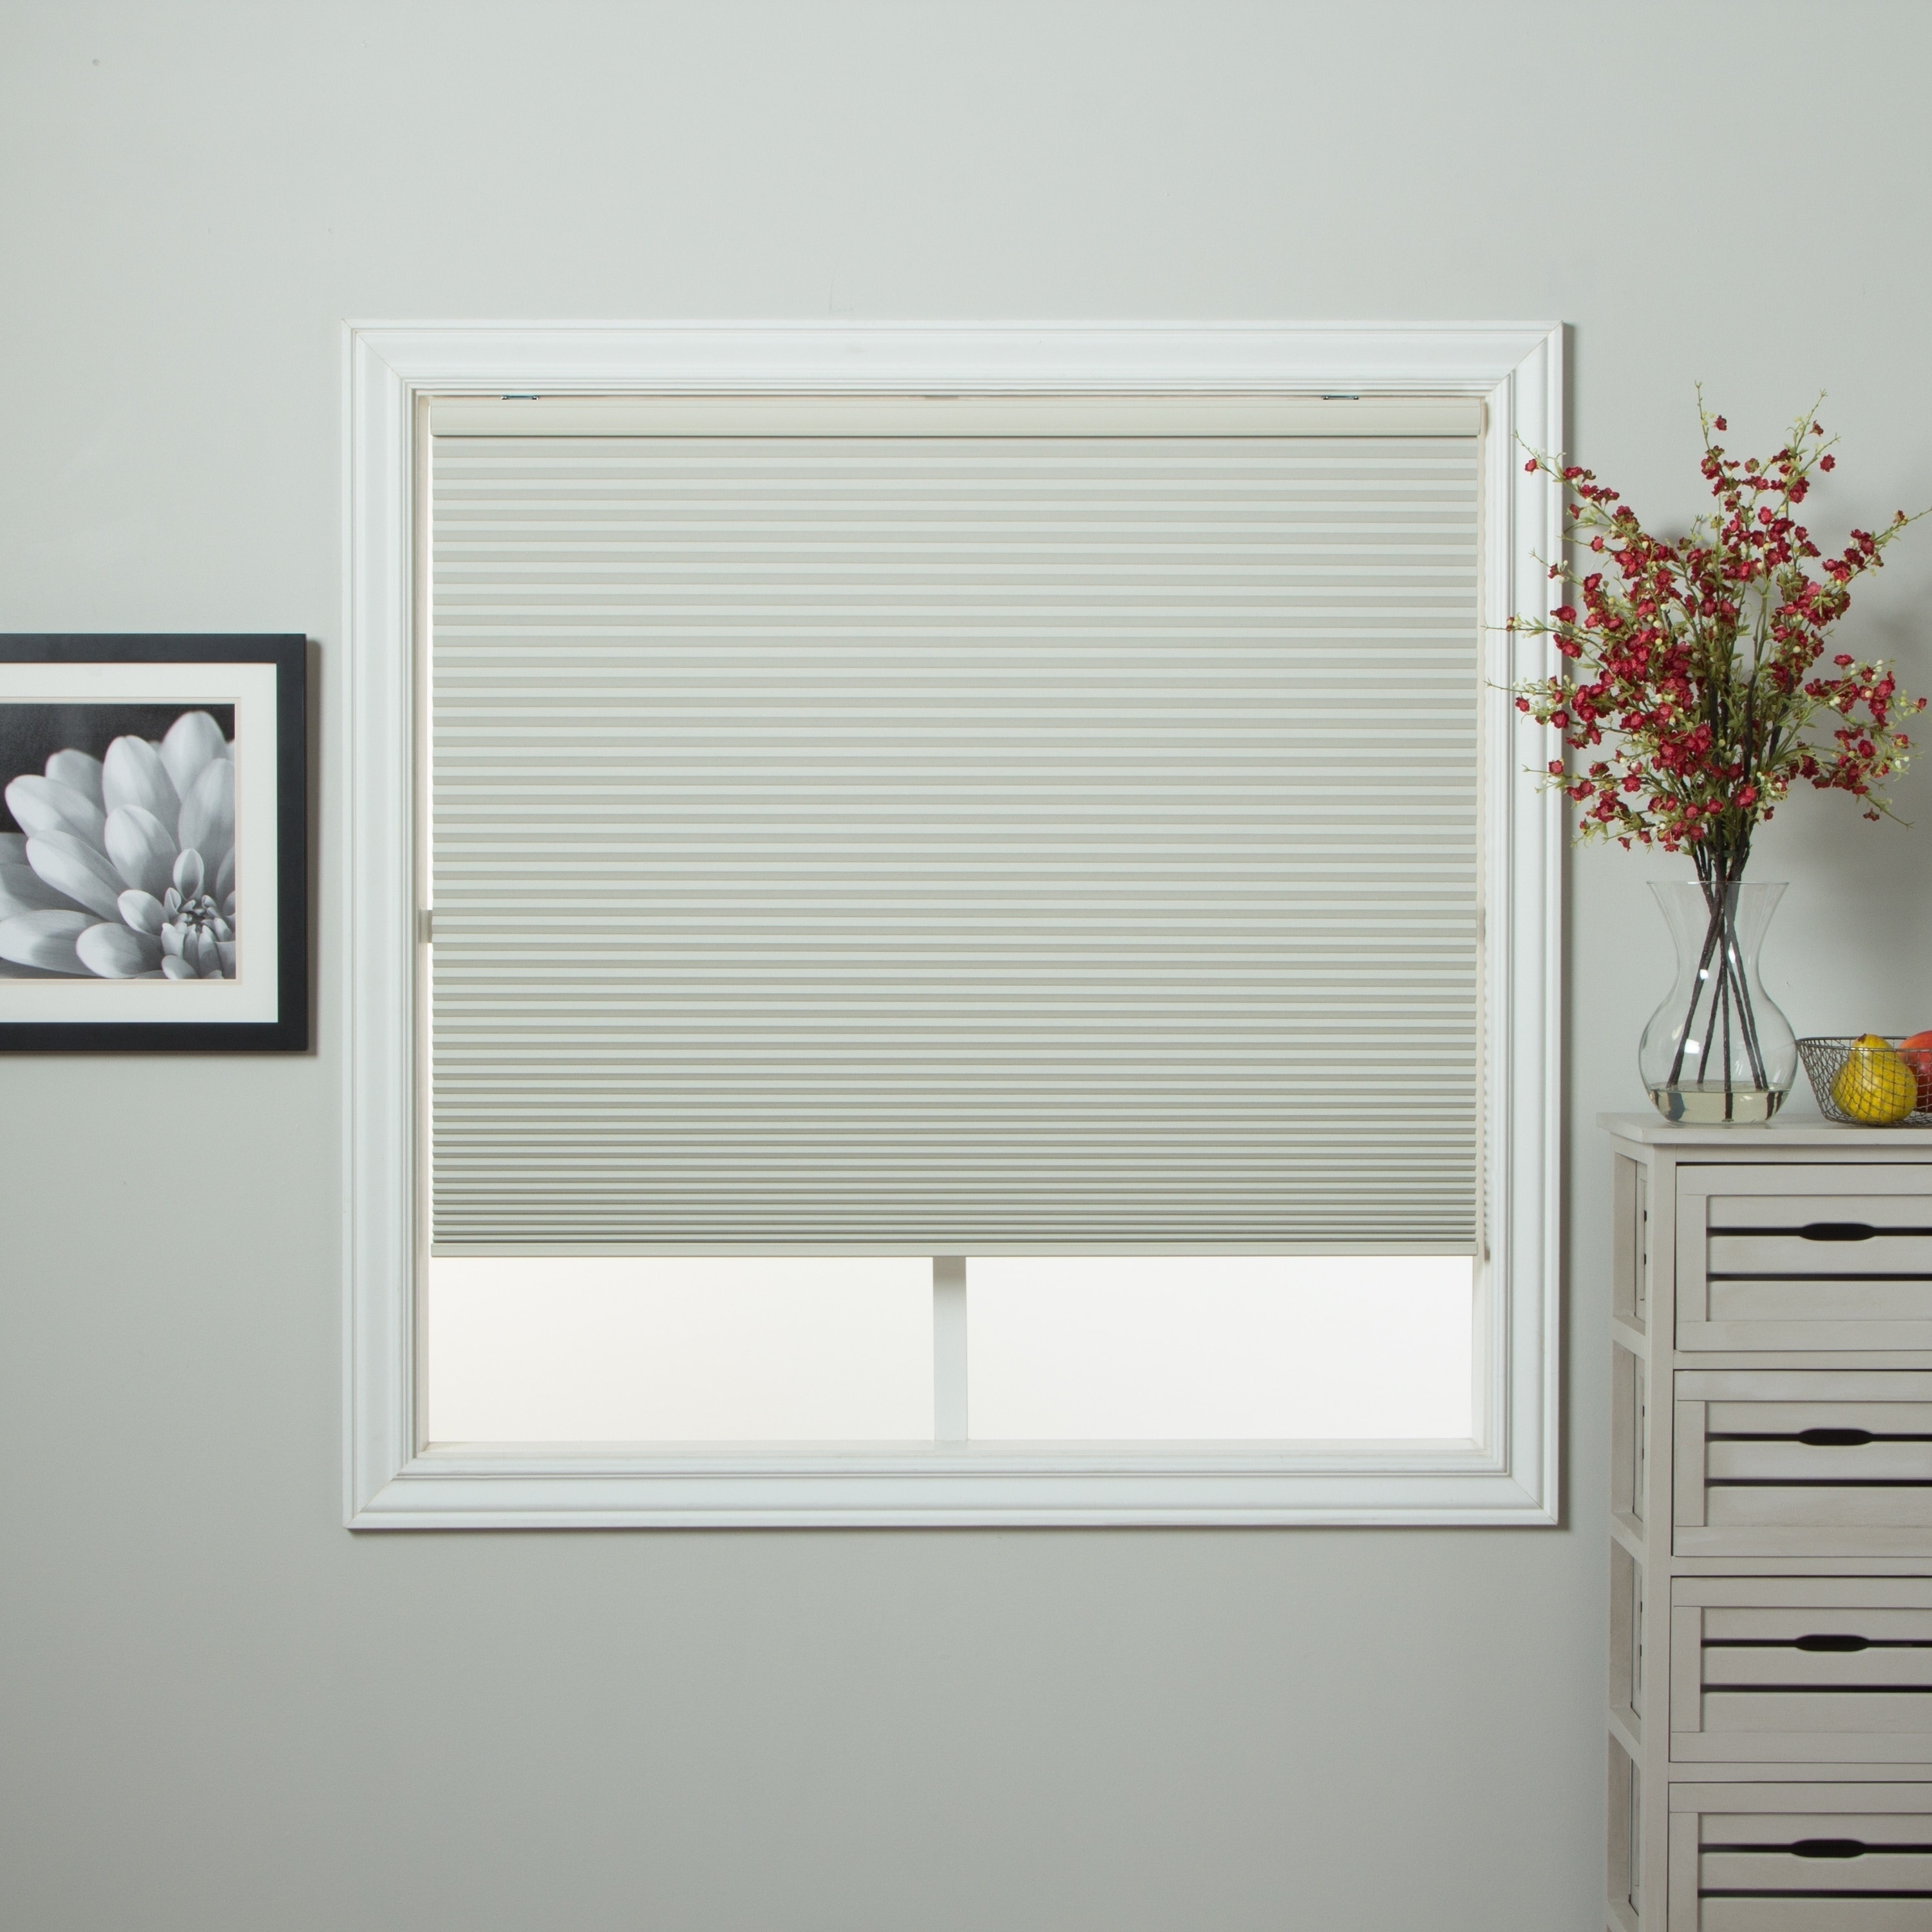 Arlo Blinds Ivory Room Darkening Cordless Lift Cellular Shades Ebay